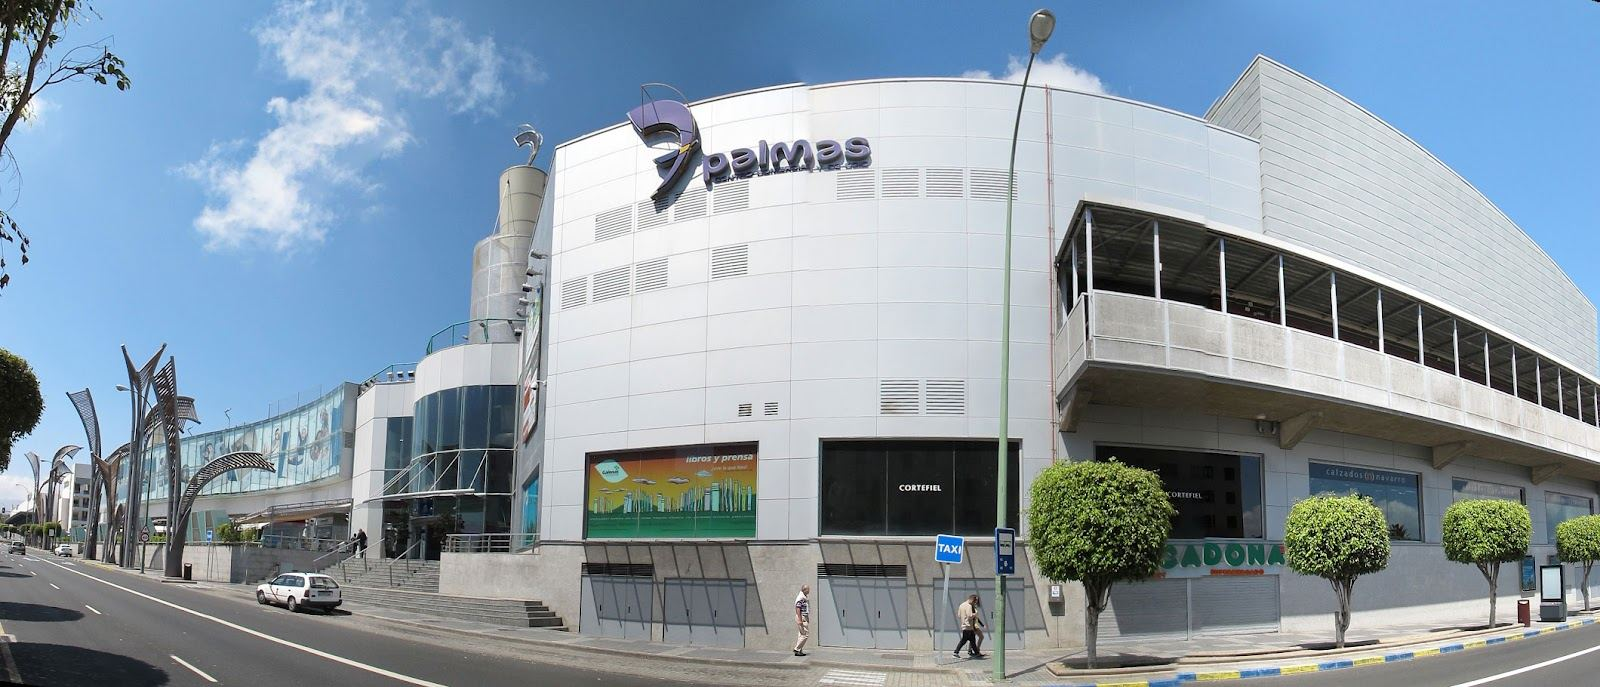 El Corte Ingles Mesa Y Lopez Telefono 8 Paradise For Shopping Lovers In Gran Canaria